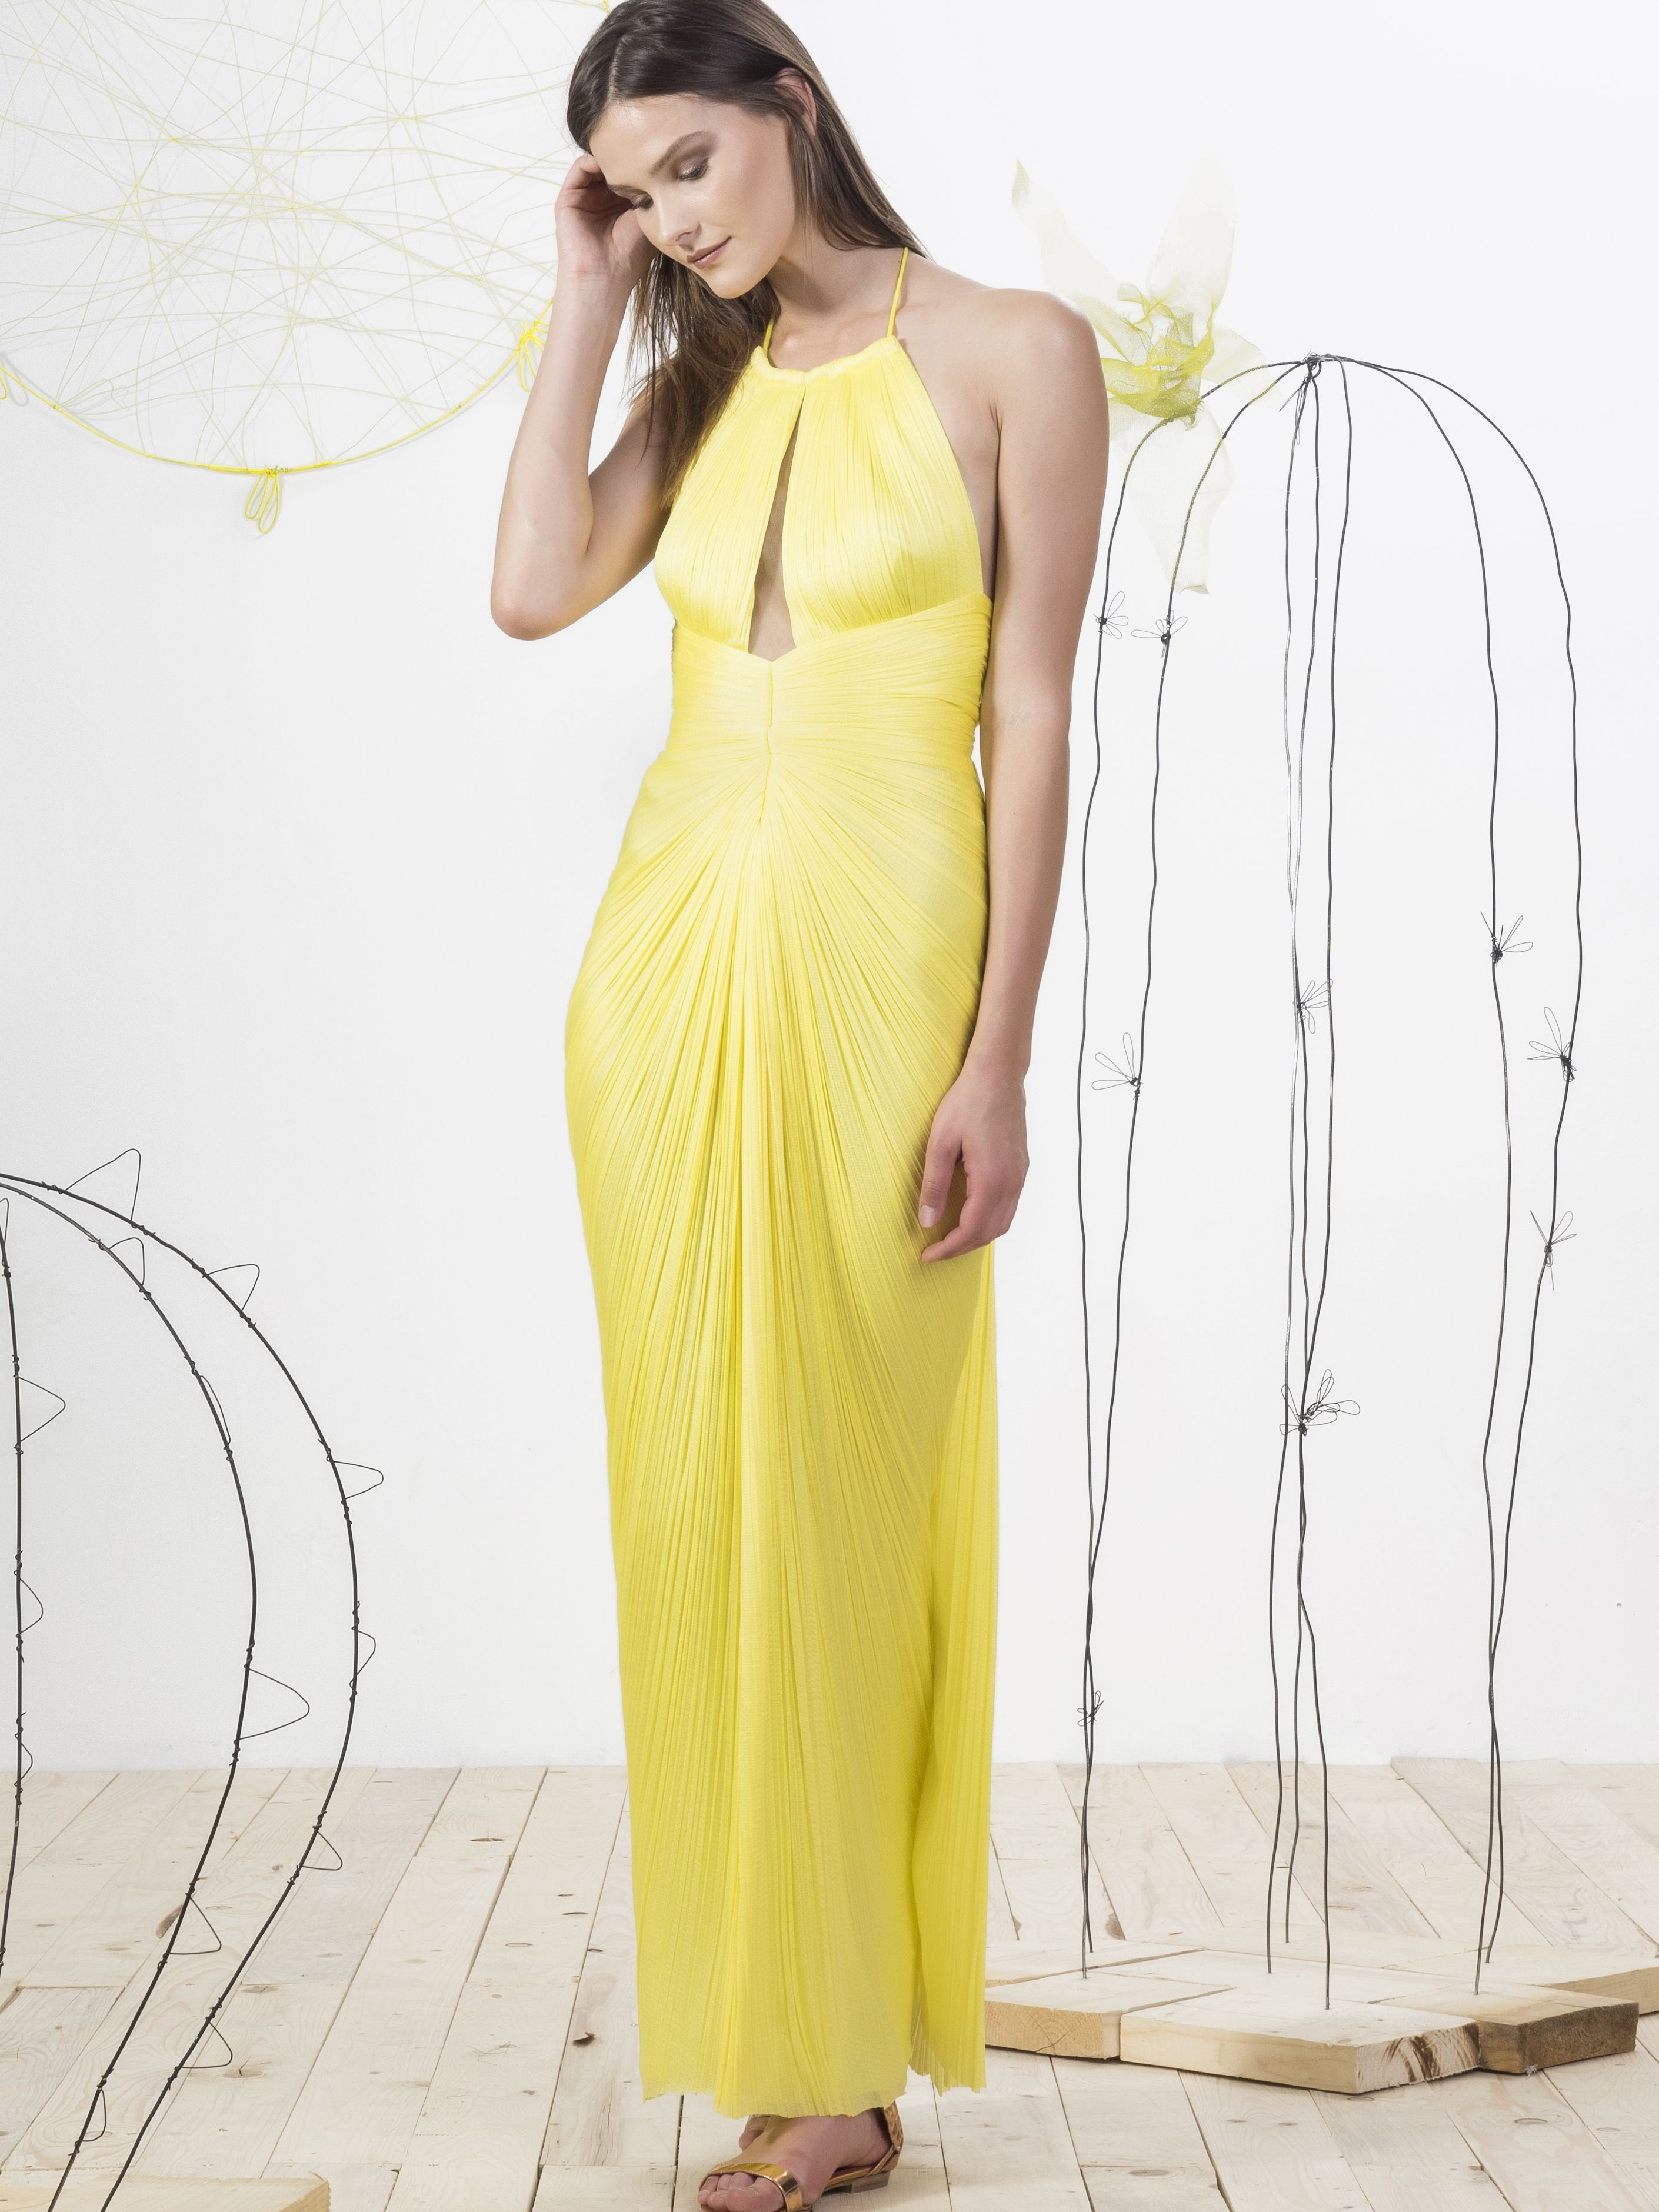 Amer gown resort pinterest fashion designers gowns and diva